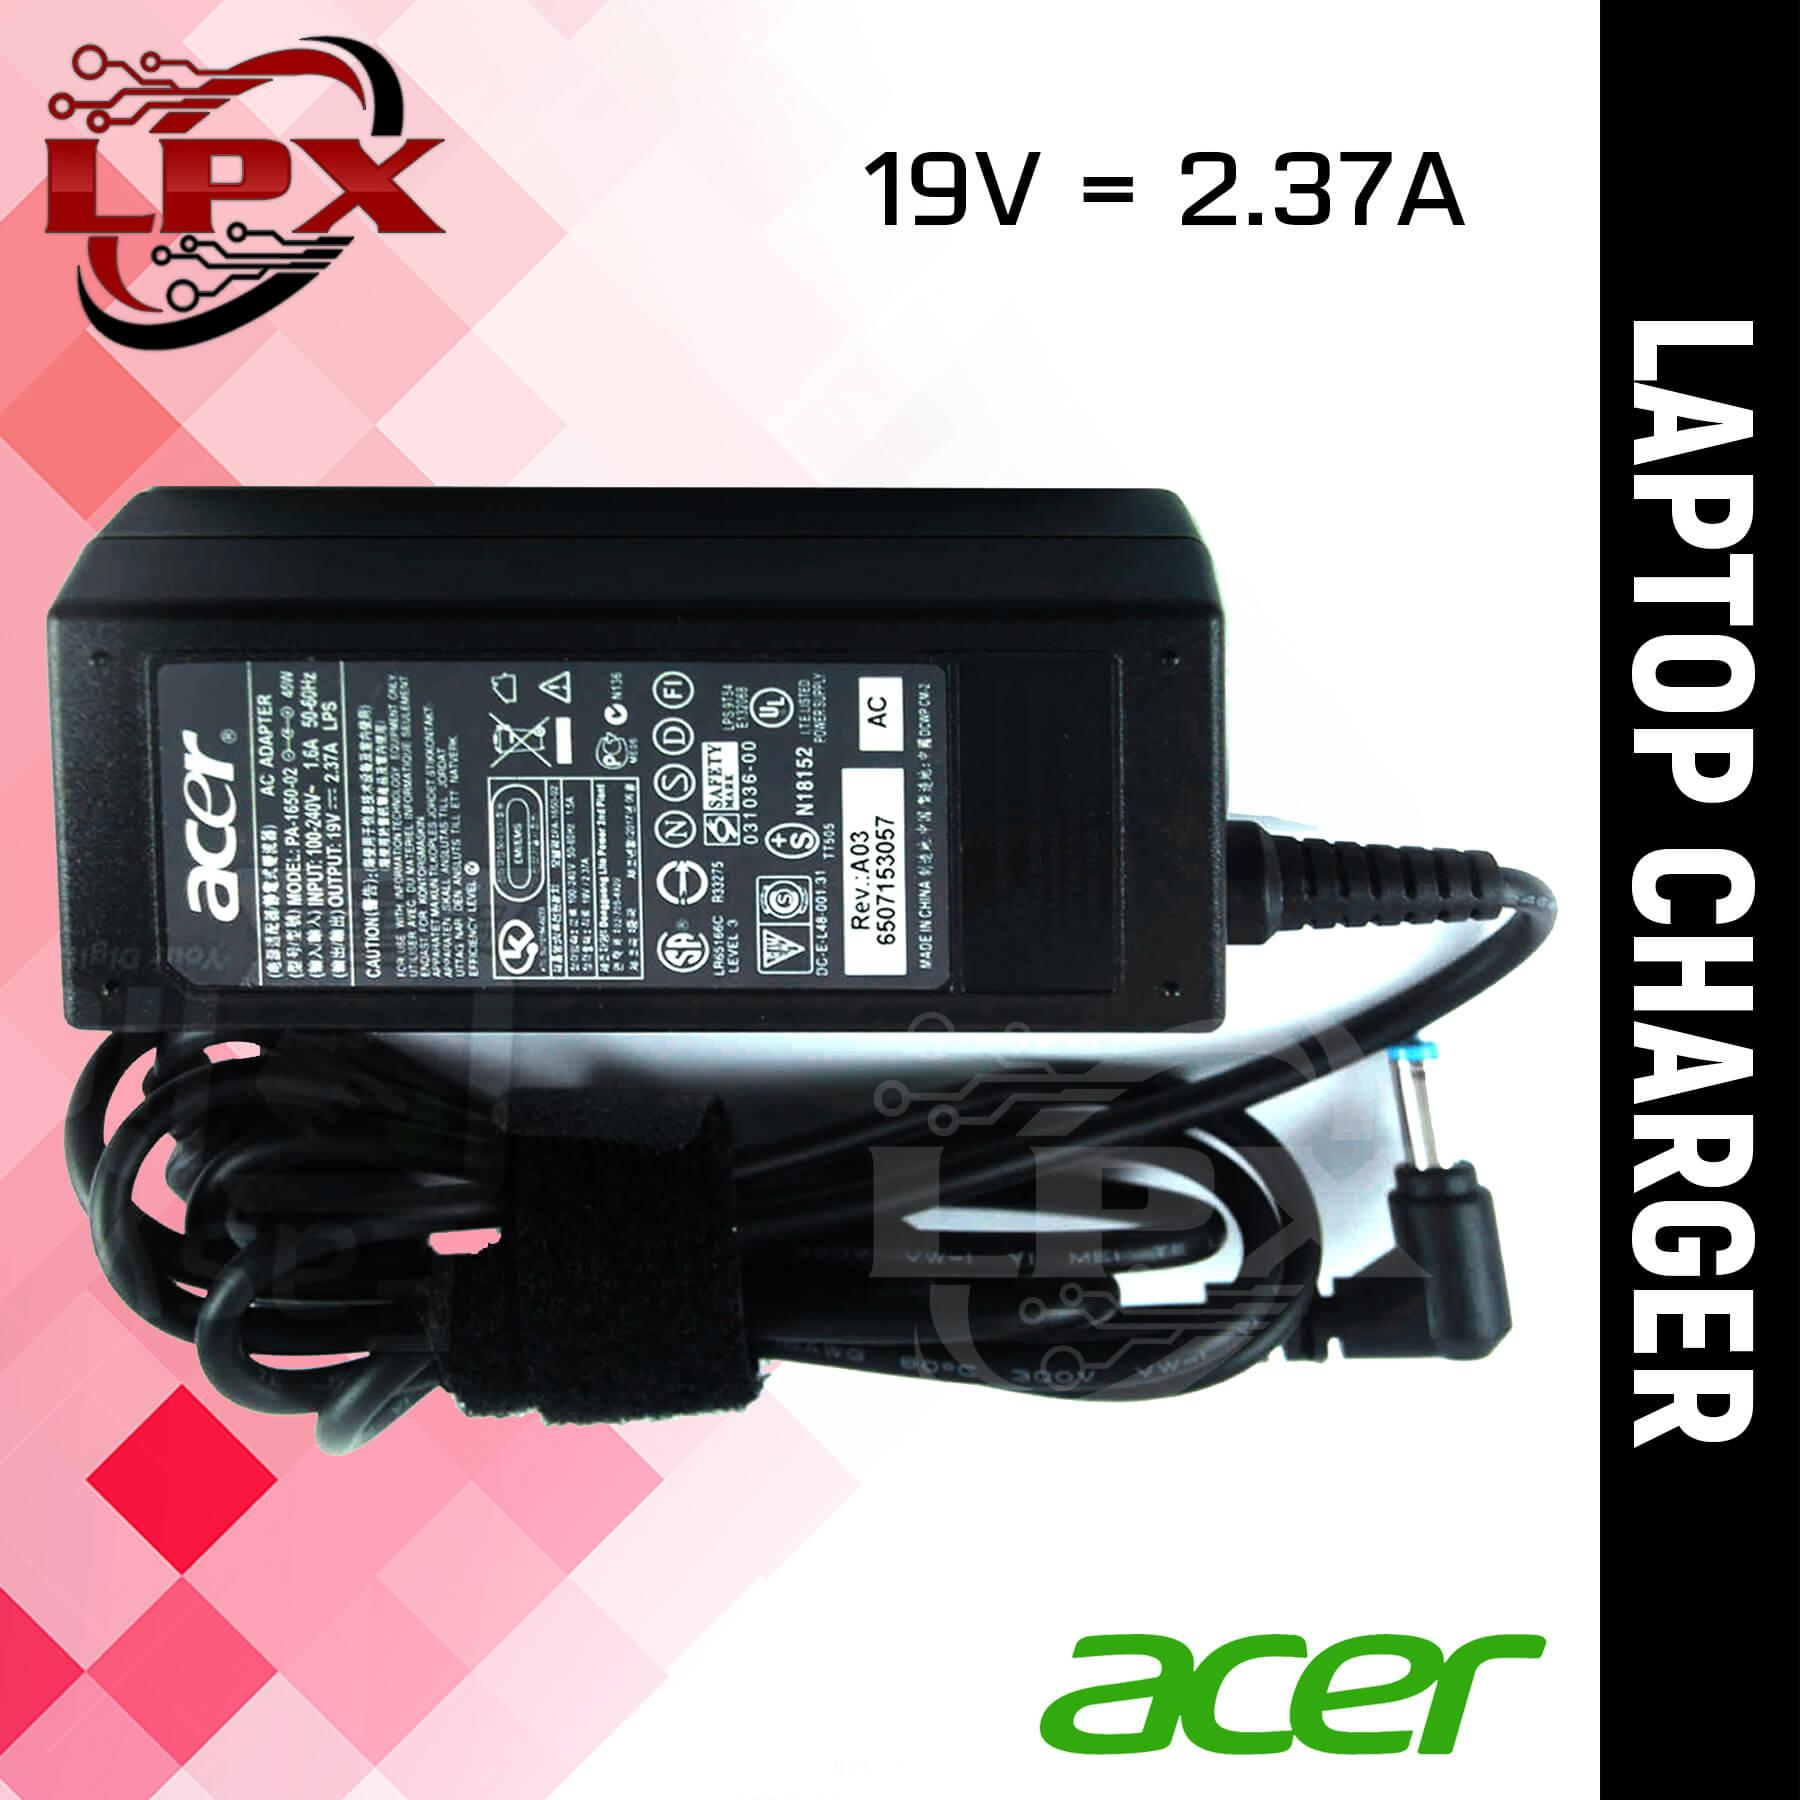 Buy Sell Cheapest Acer Aspire 1 Best Quality Product Deals Keyboard 4741 4743 4745 4750 4752 4810 4810t Laptop Charger For 19v 237a E5 721 731